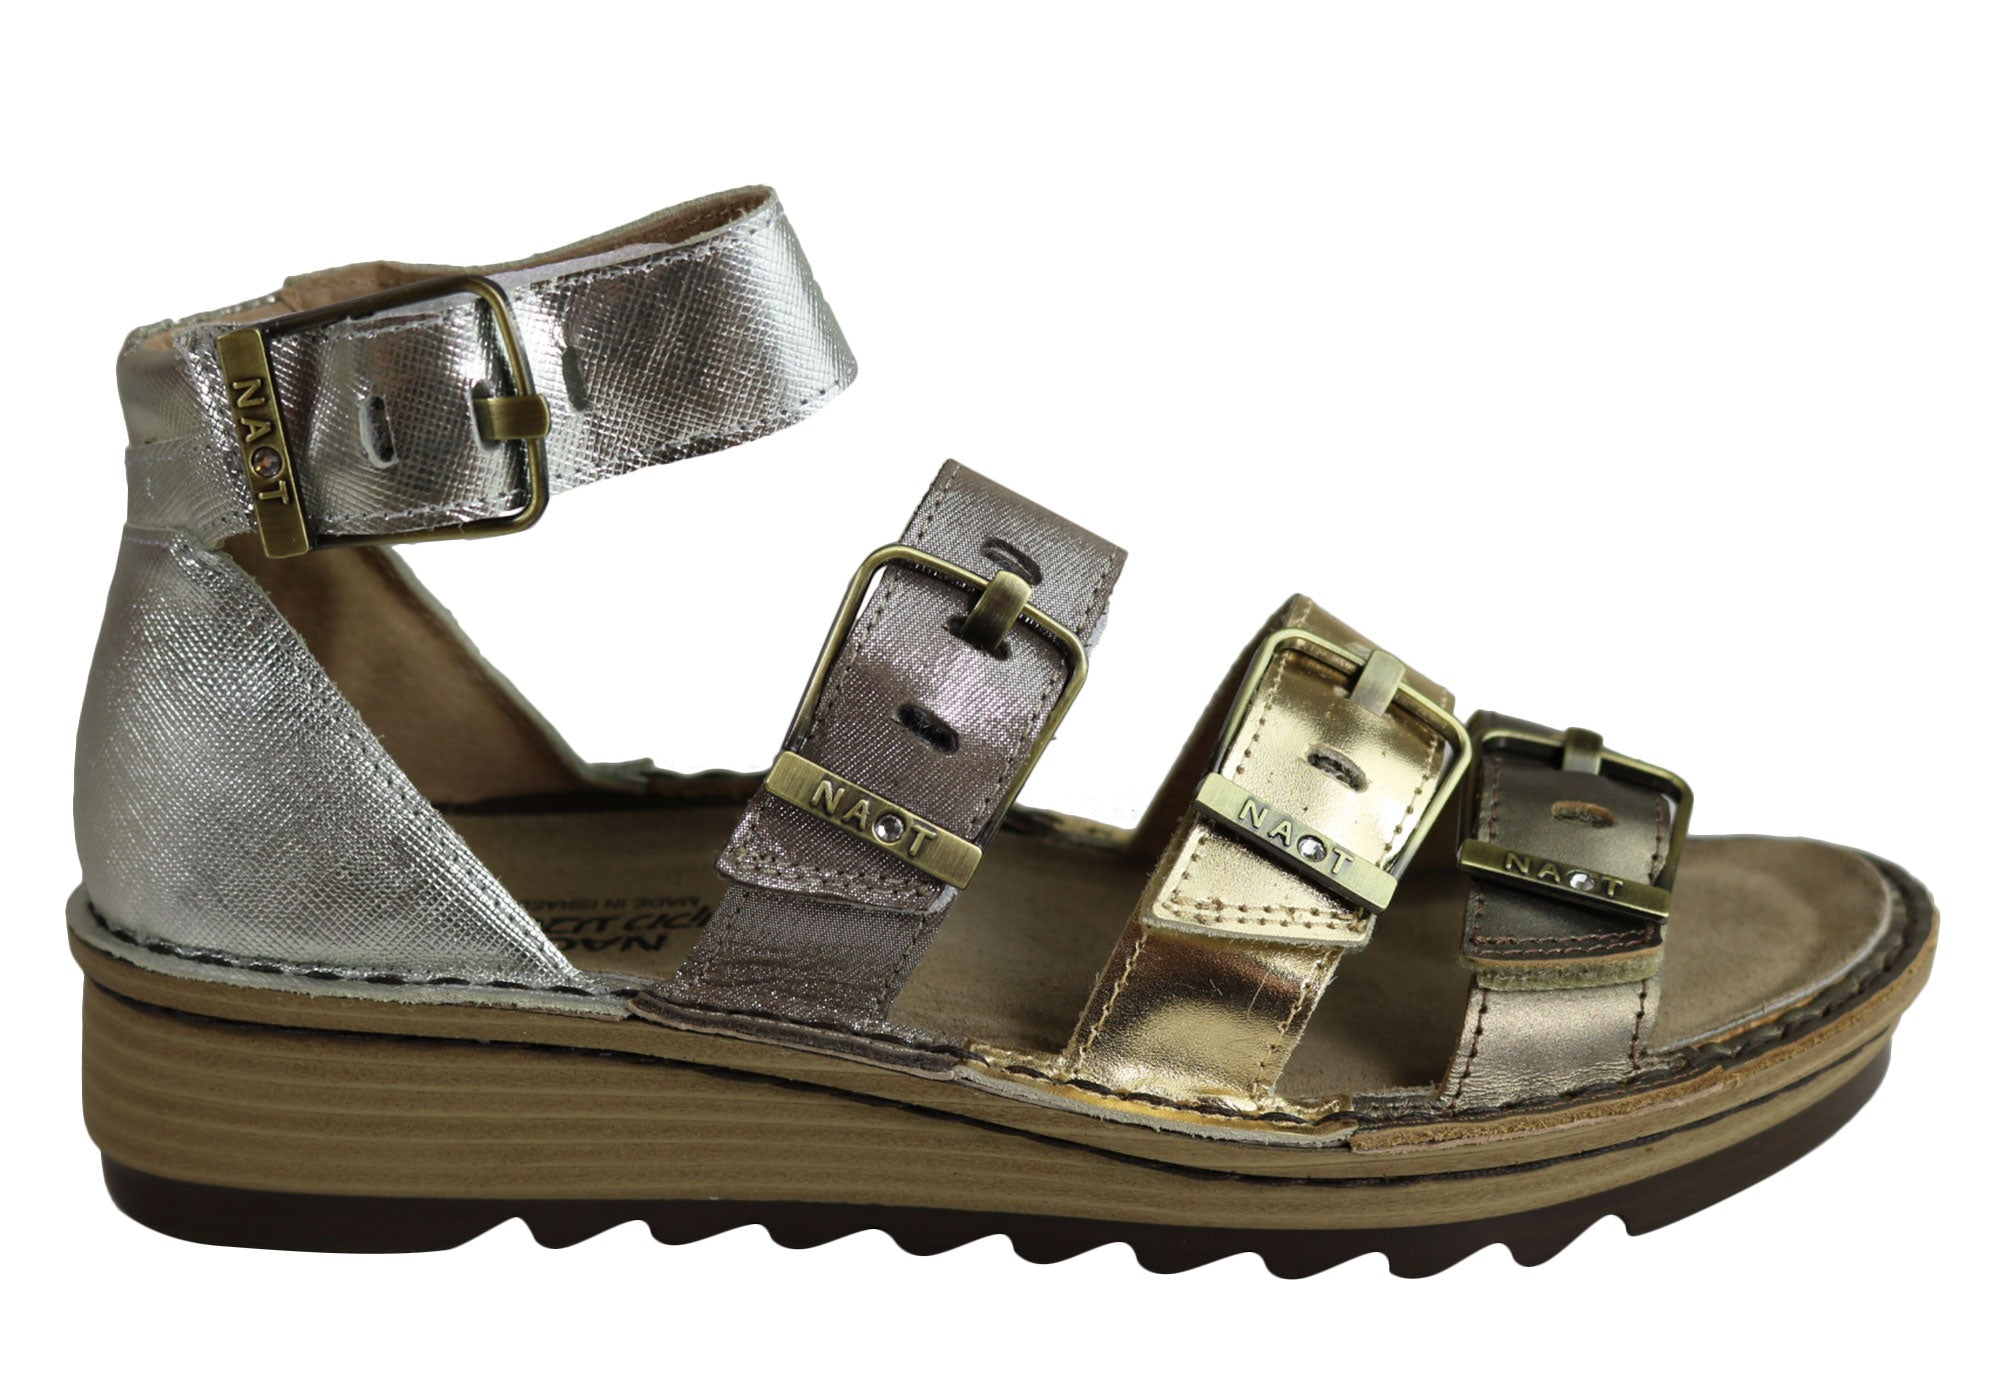 d1253ab4c48 Naot Begonia Womens Comfortable Cushioned Gladiator Inspired Sandals ...